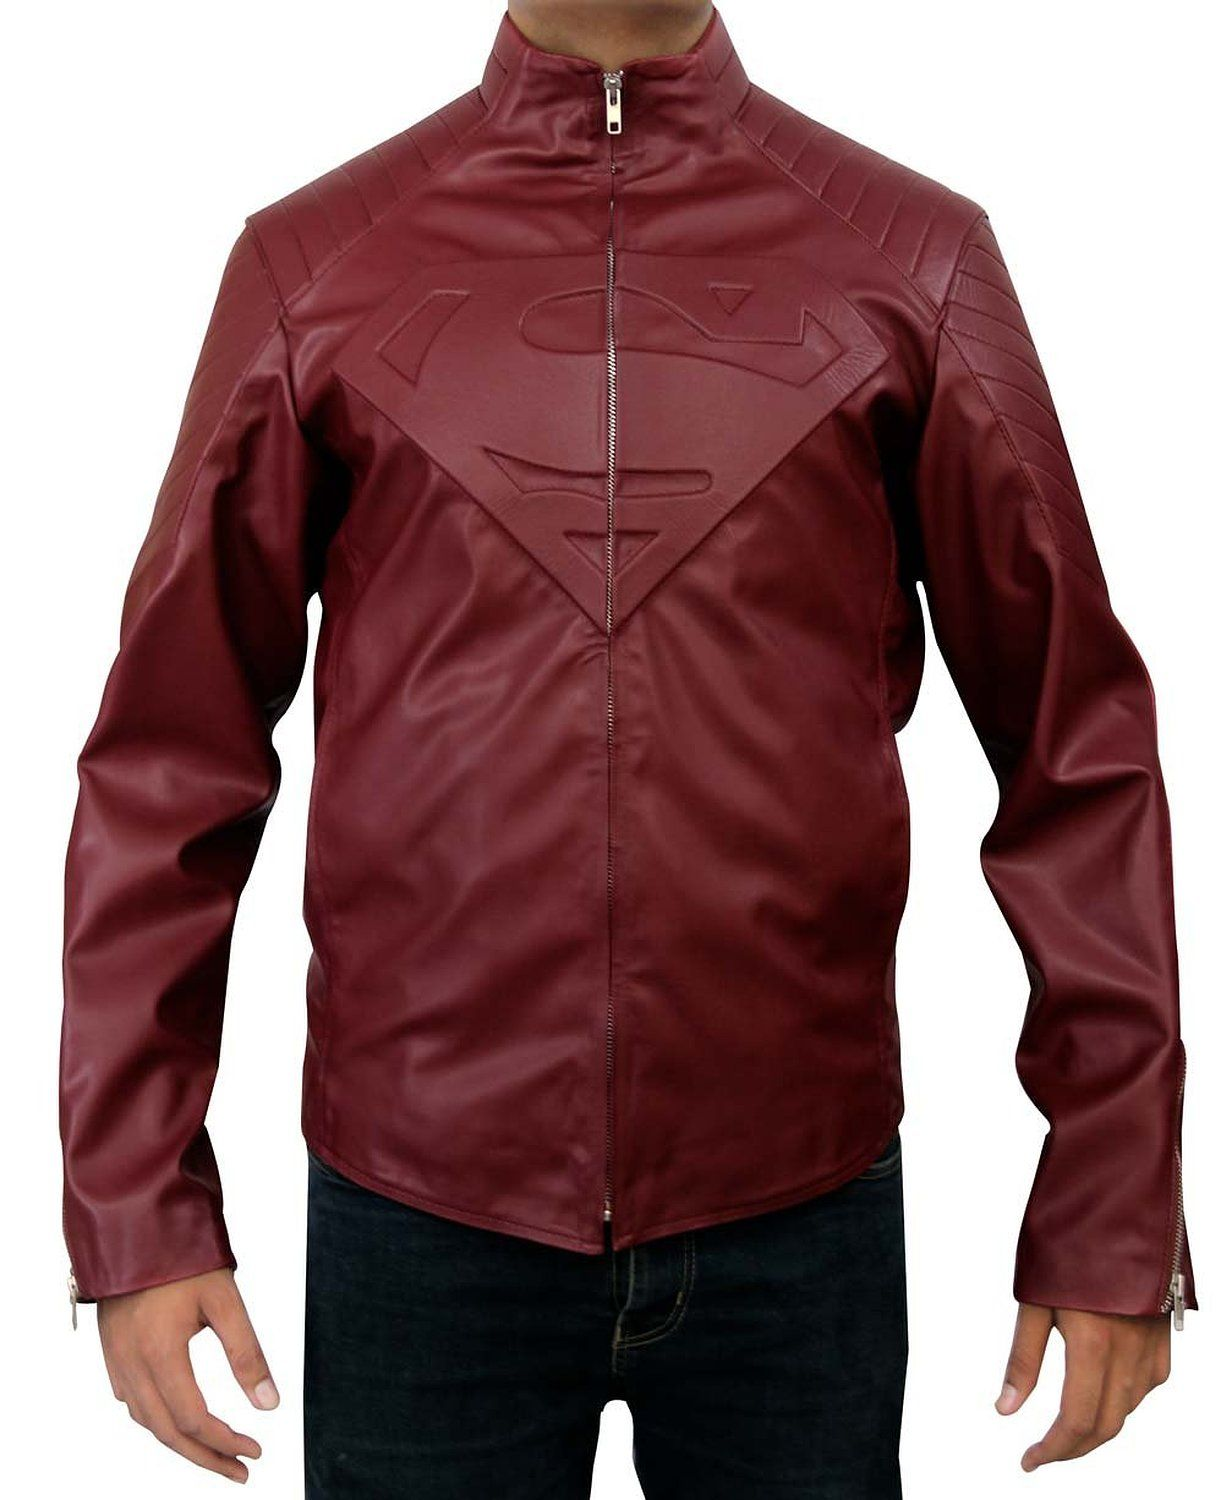 Smallville Leather Jacket on Sale UK, US and Canada Free